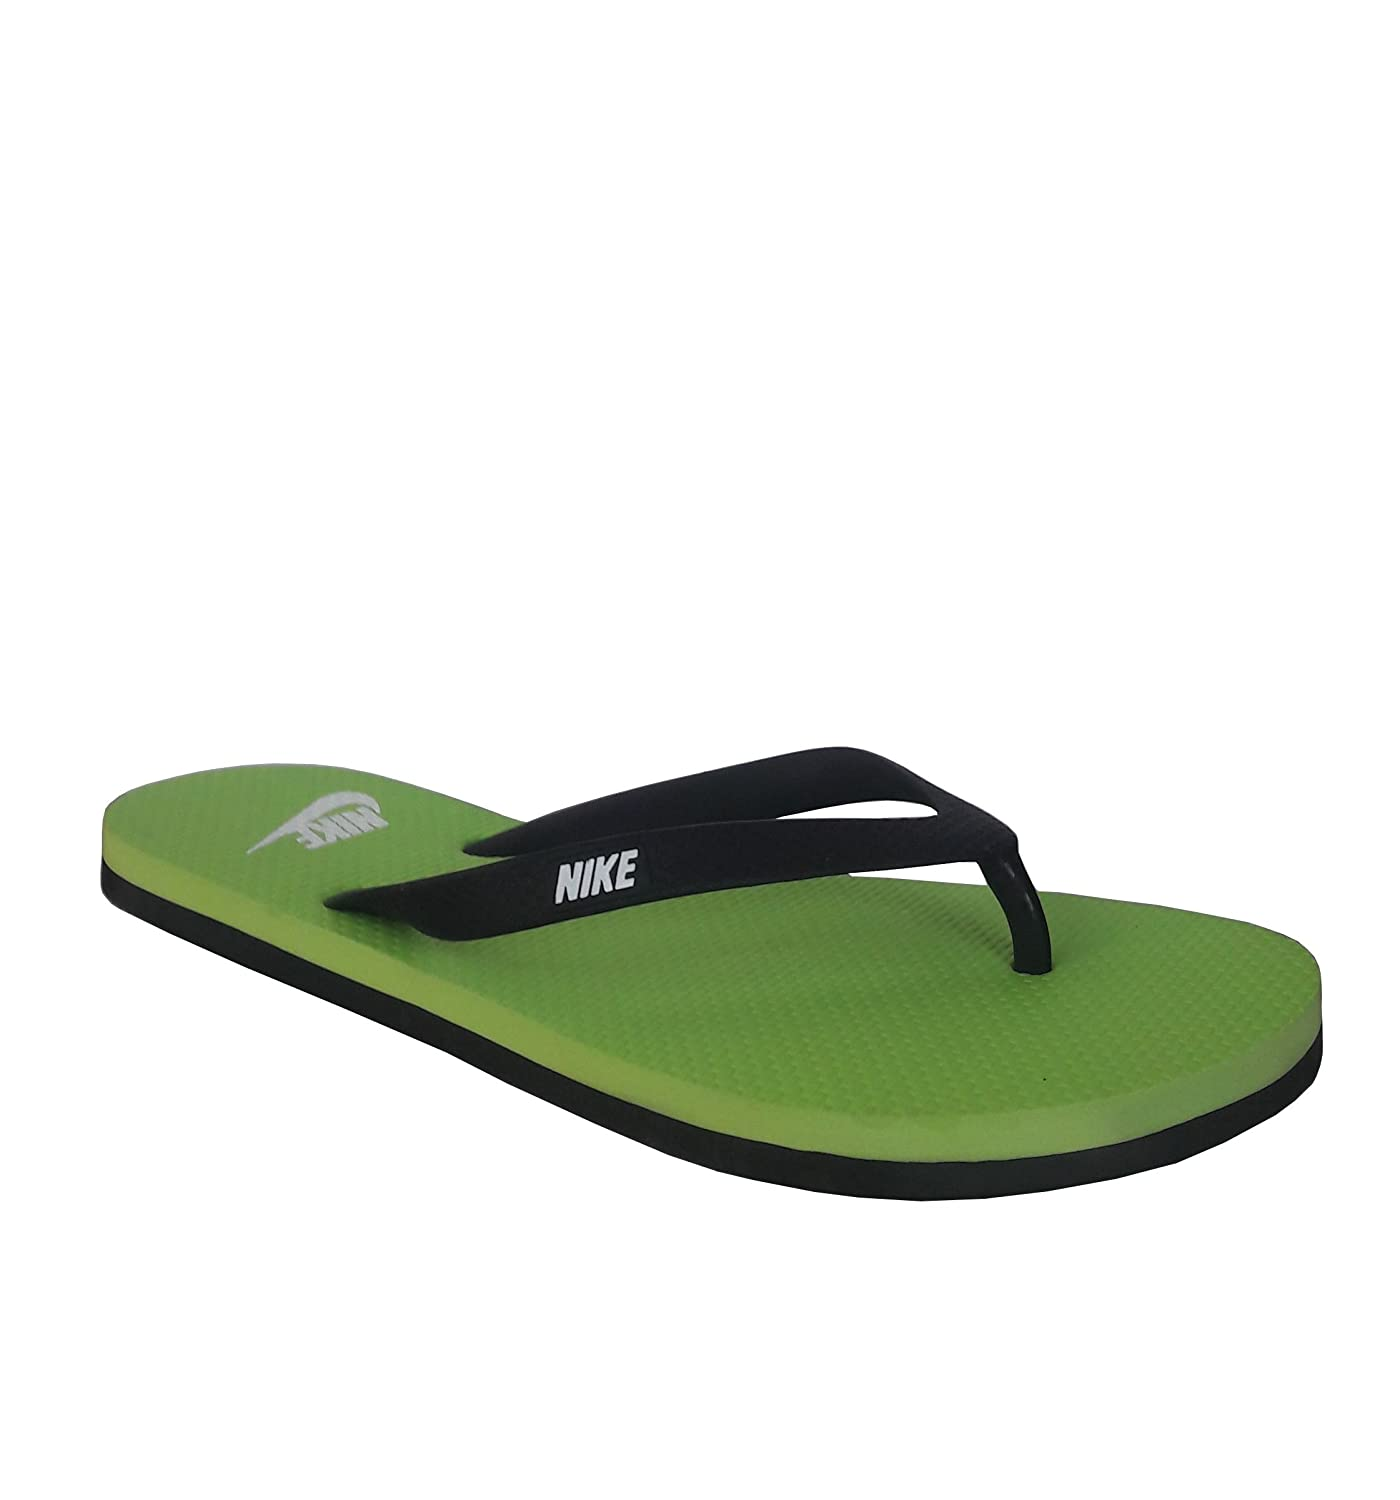 new arrival 86779 0fda0 Nike Aquaswift Thong Black/White - Electric Green Slippers ...